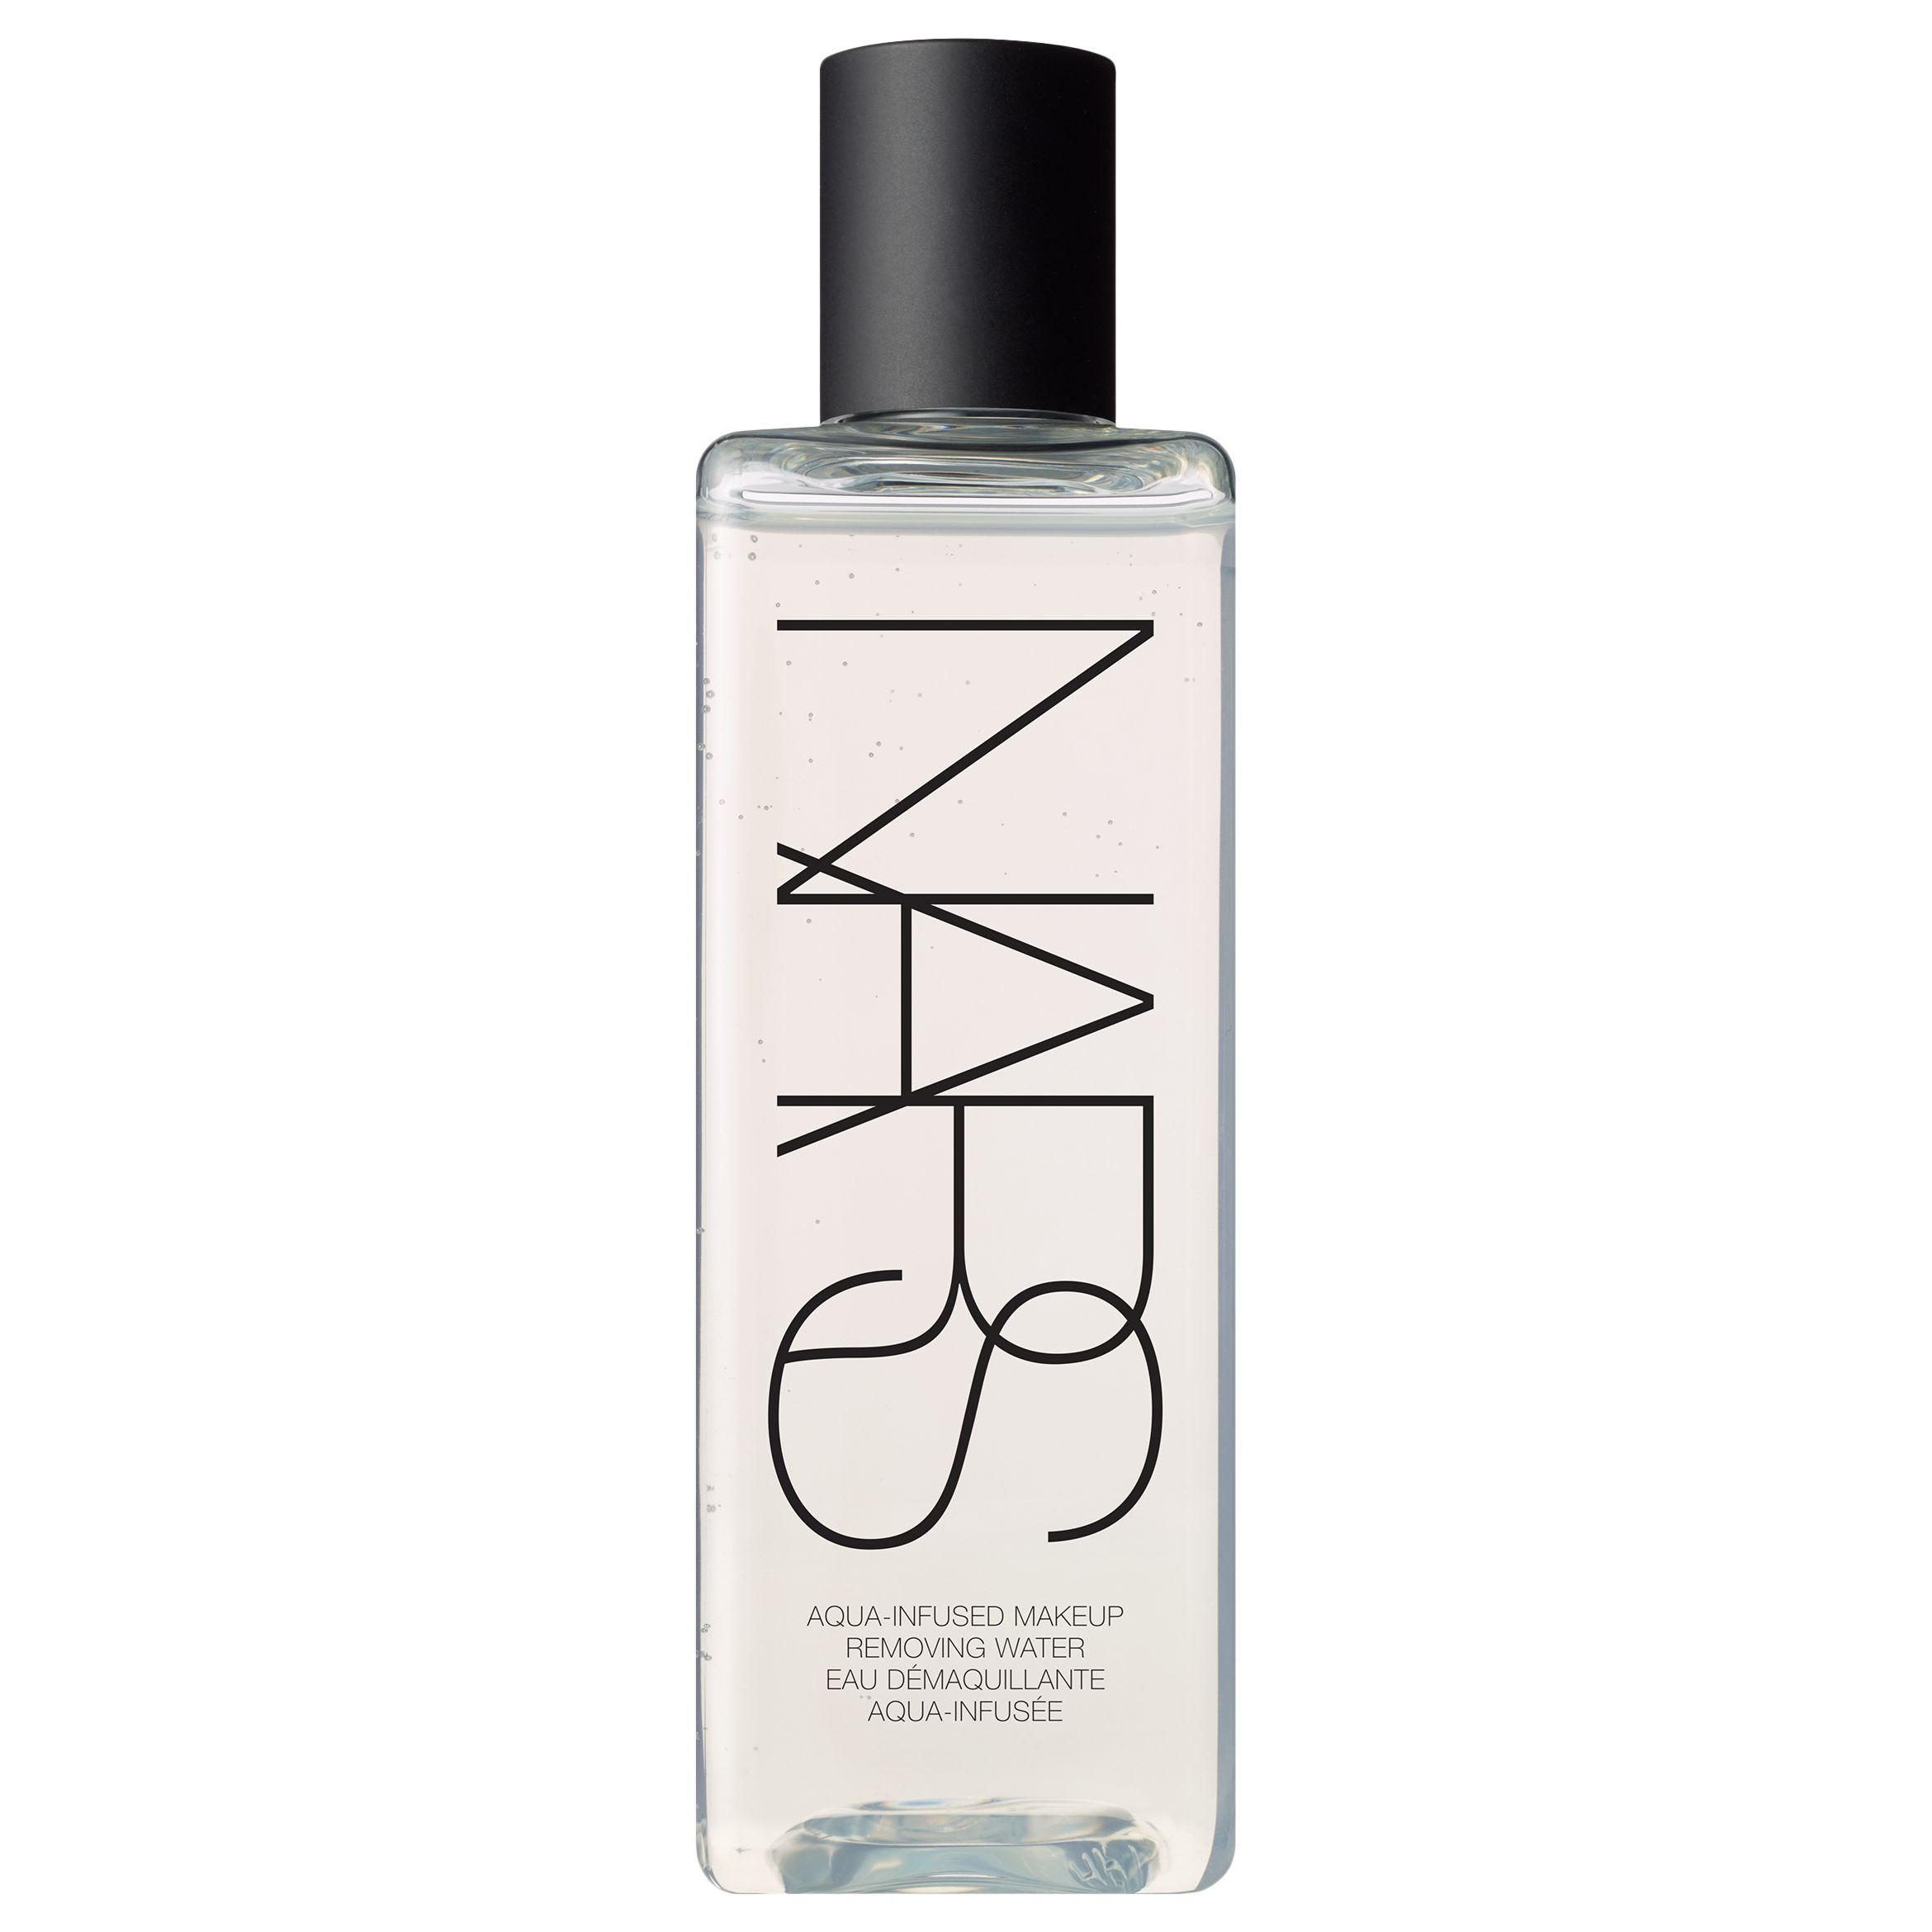 NARS NARS Aqua Infused Makeup Removing Water, 200ml